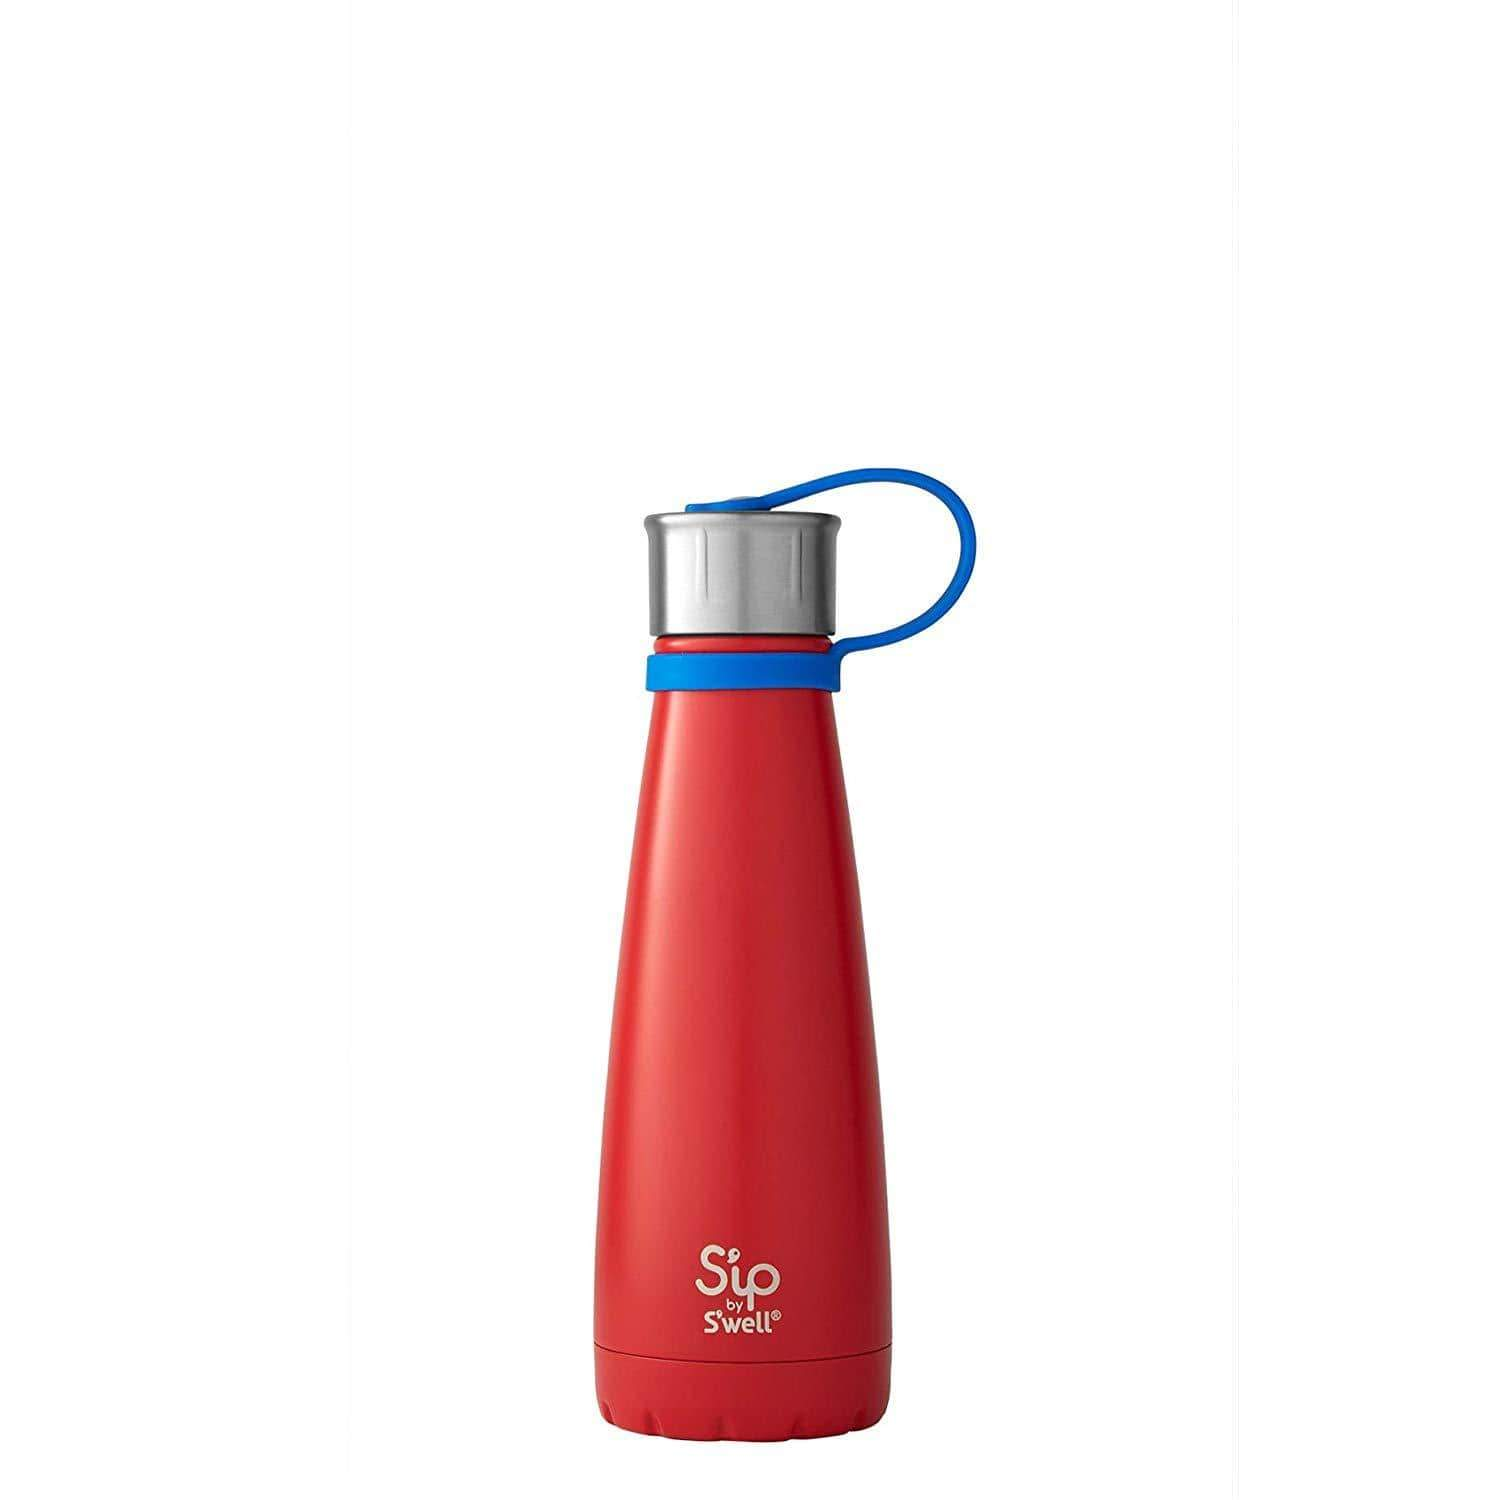 Sip by Swell 10oz/295ml Red Robin Termosz